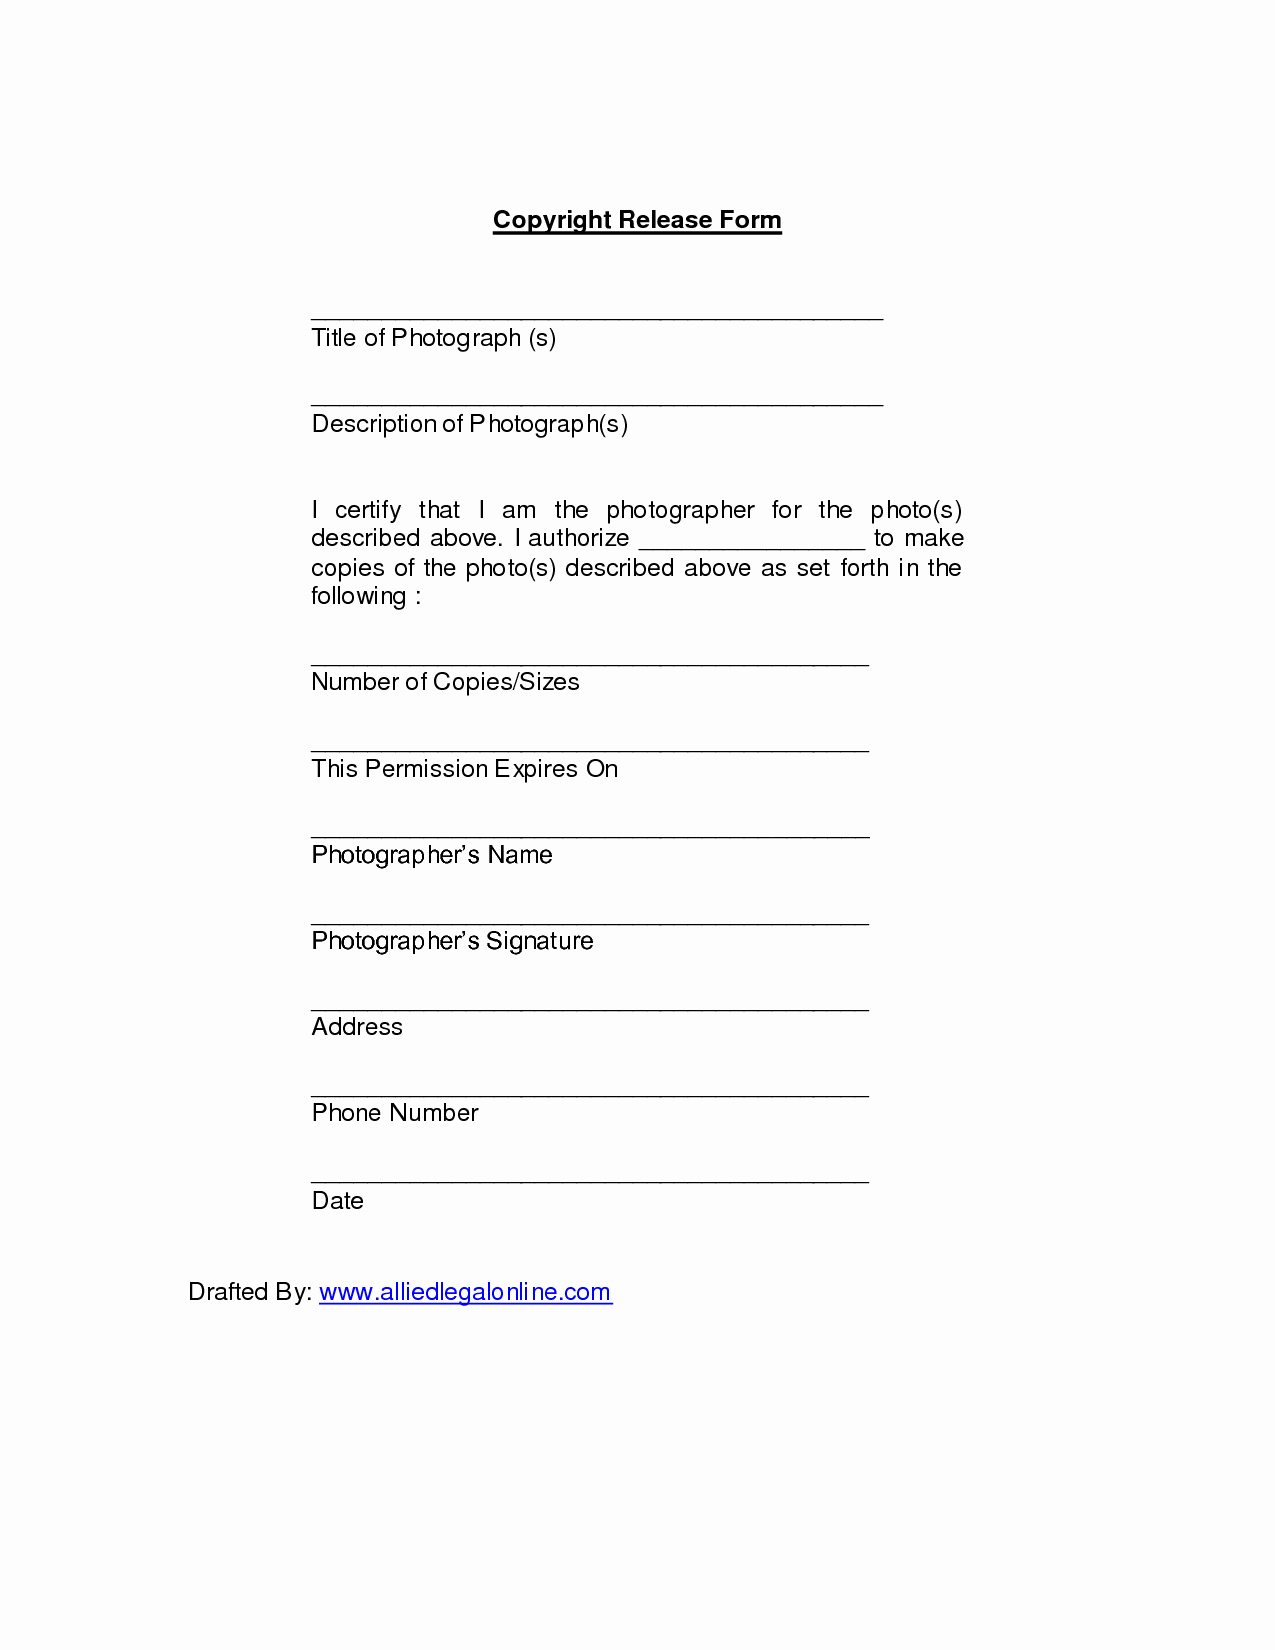 Copyright Release form Template Lovely Copyright Release for